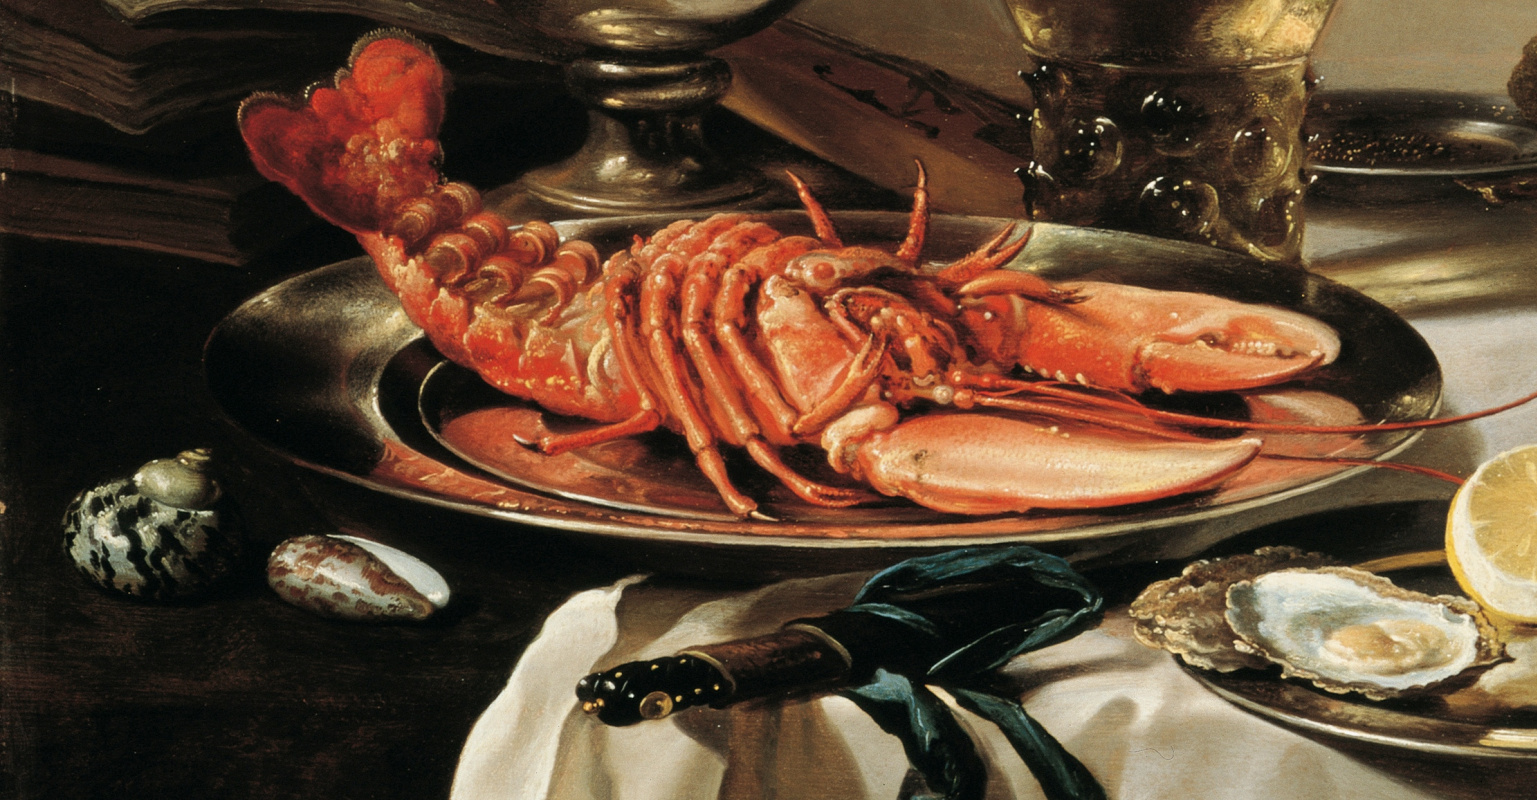 Pieter Claesz. Still life with lobster, jug, violin, lemon and berries. Fragment 2. Lobster on a platter and shells